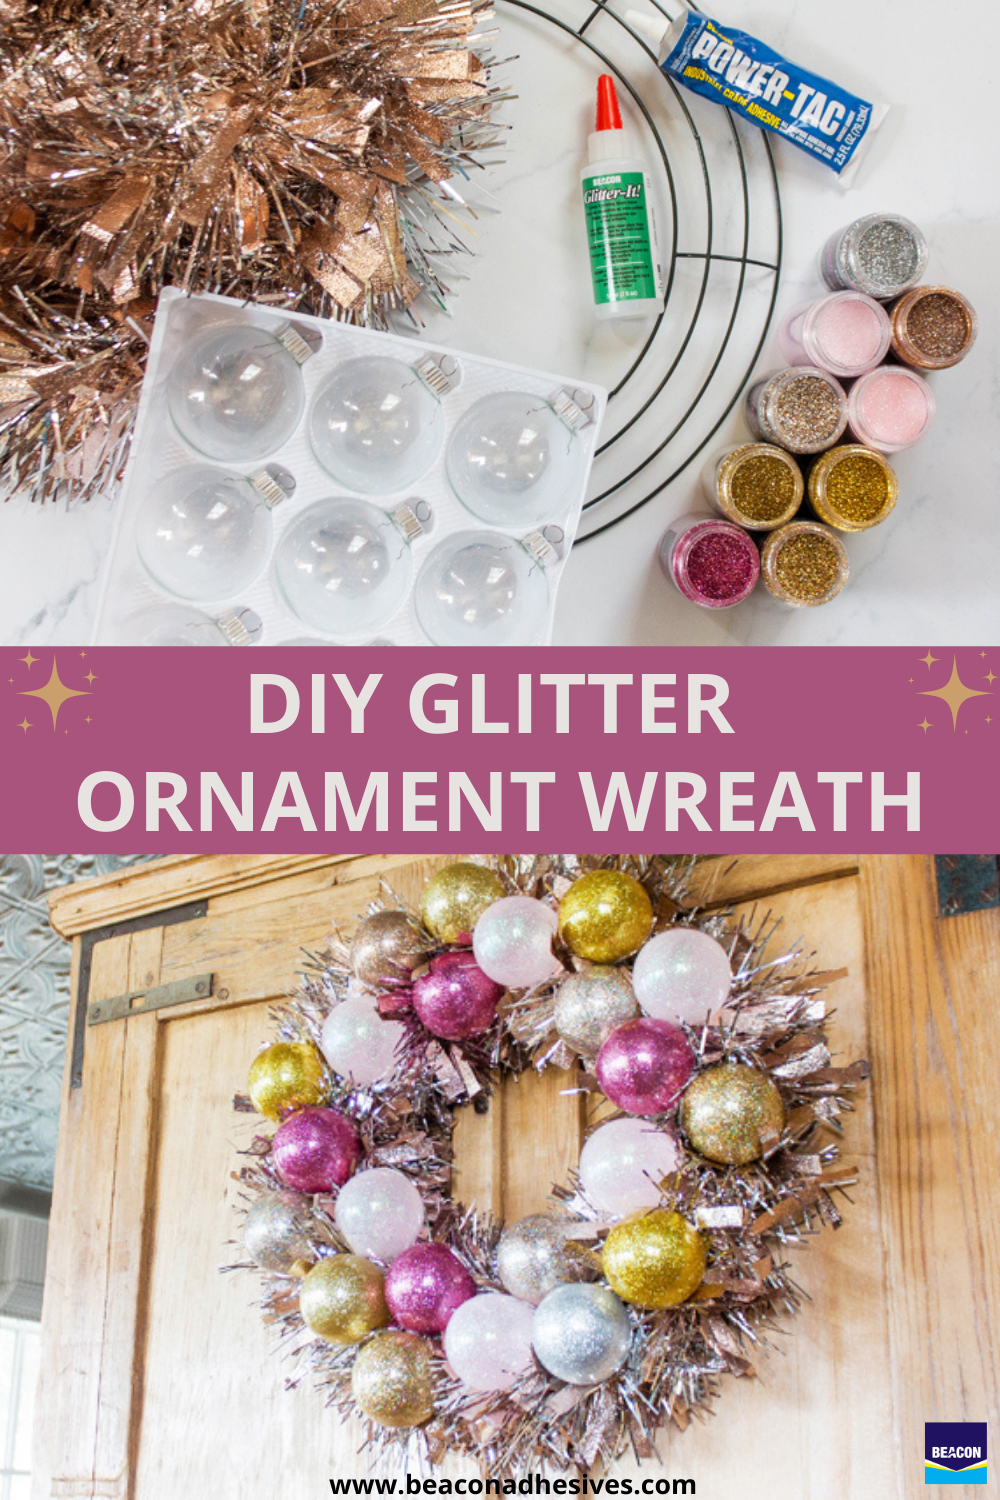 Beacon Adhesives Consumer Easy Diy Glitter Ornaments Using Glitter It Glitter Ornaments Diy Glitter Diy Glitter Ornaments